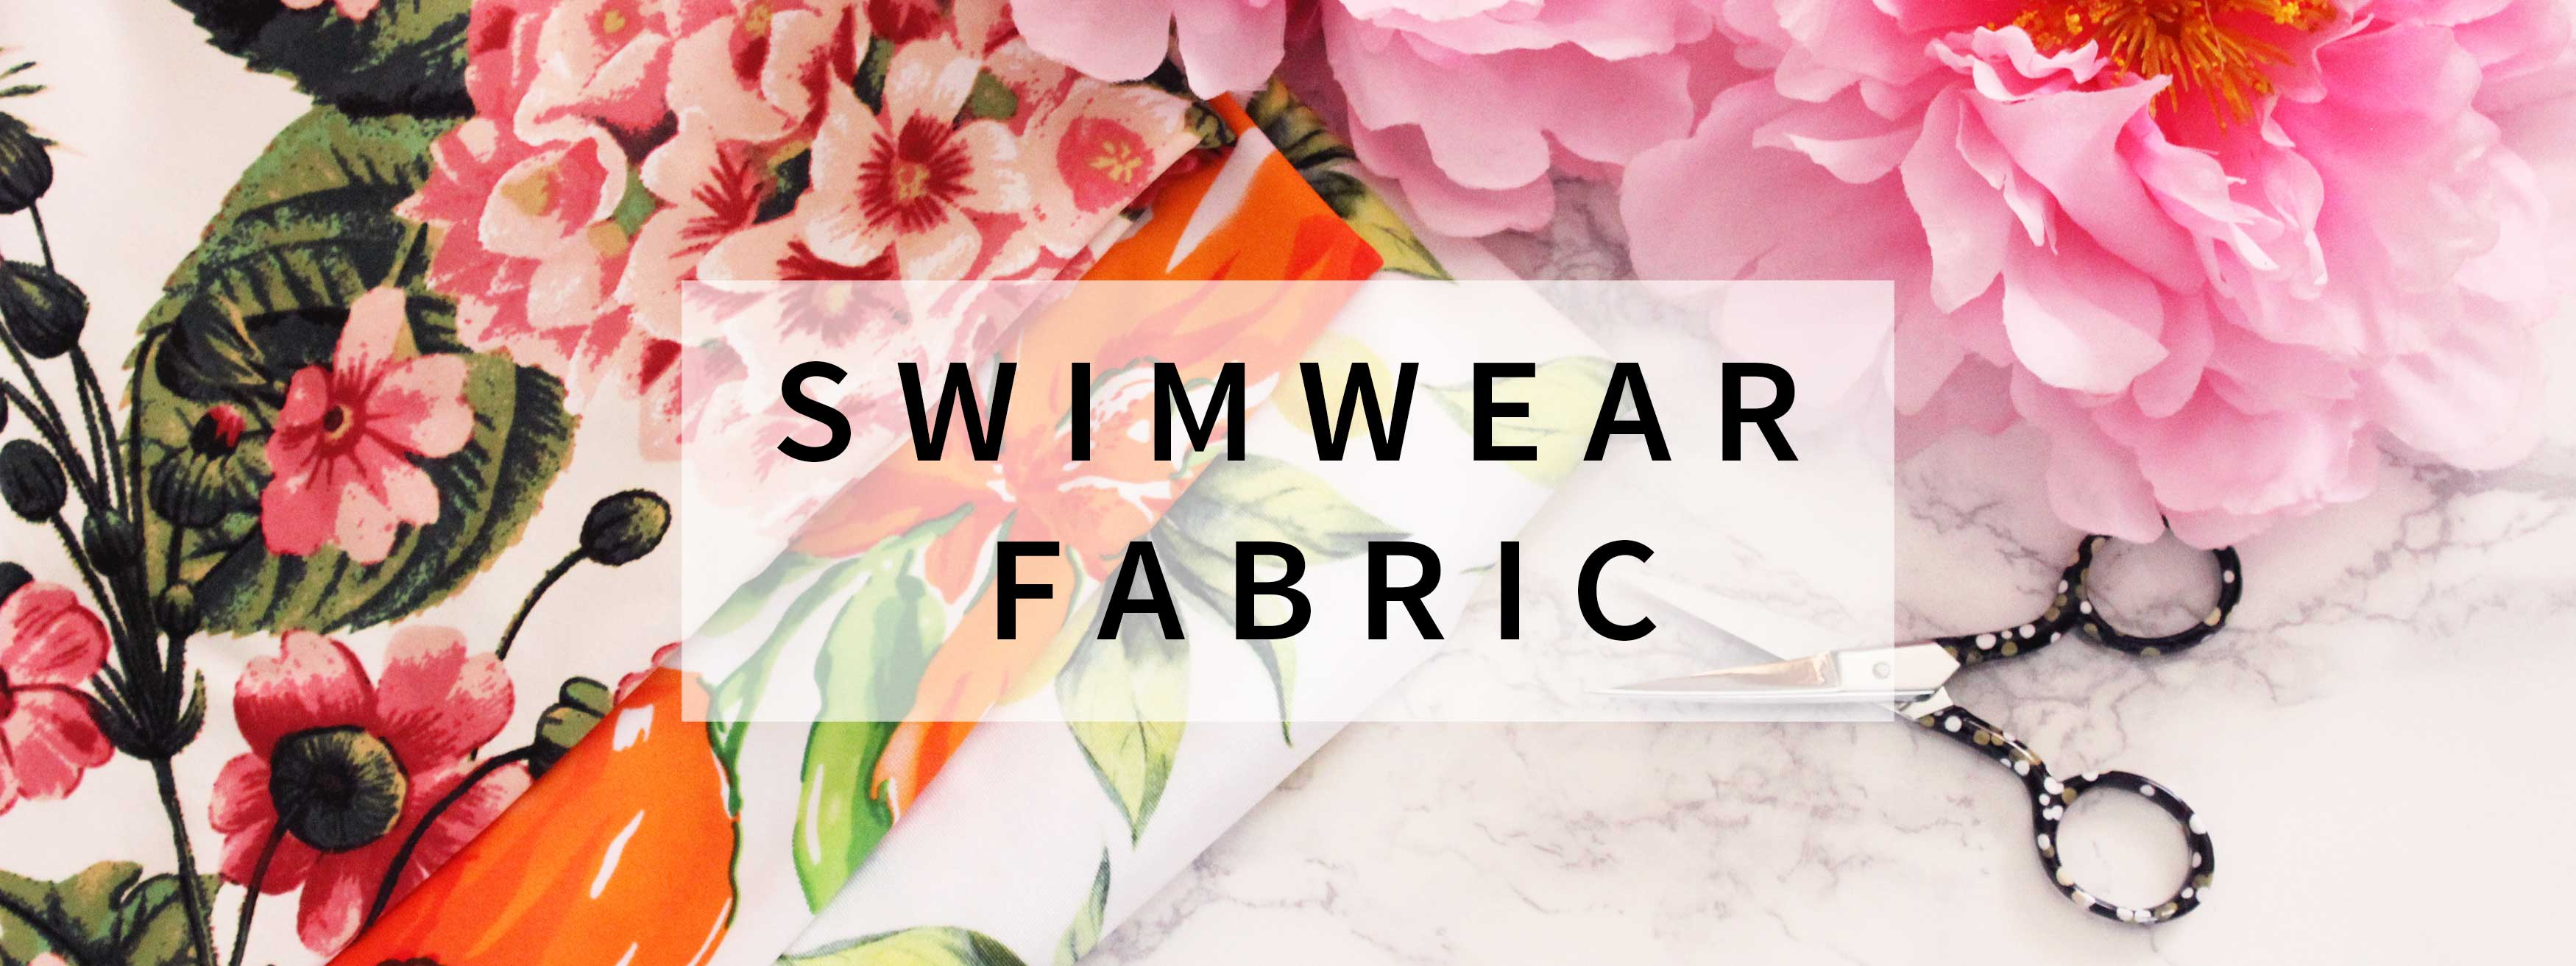 Where to buy Swimwear Fabrics & Supplies Sewing Your Own Swimwear